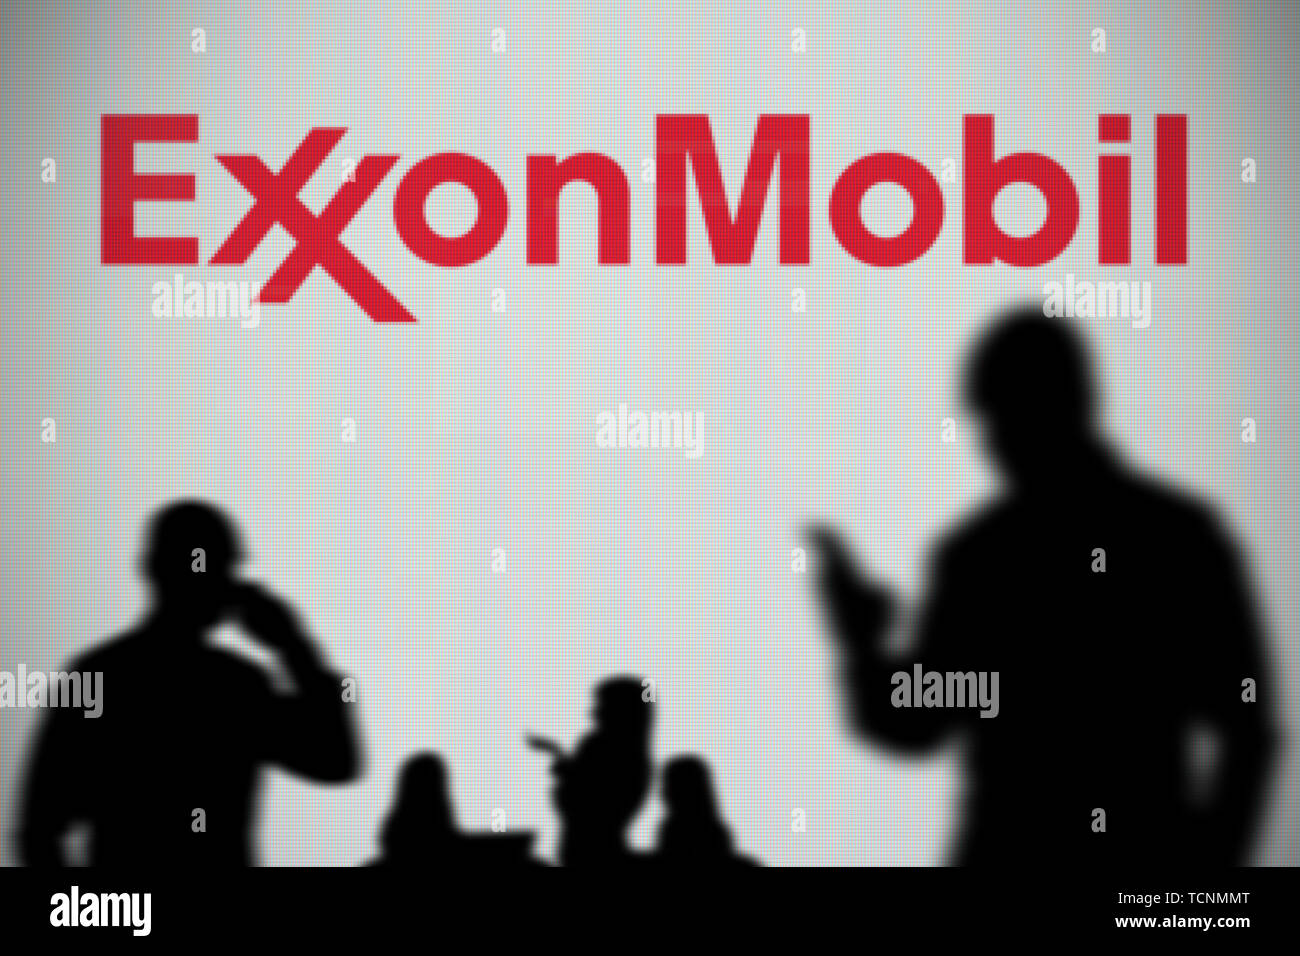 The ExxonMobil logo is seen on an LED screen in the background while a silhouetted person uses a smartphone in the foreground (Editorial use only) - Stock Image